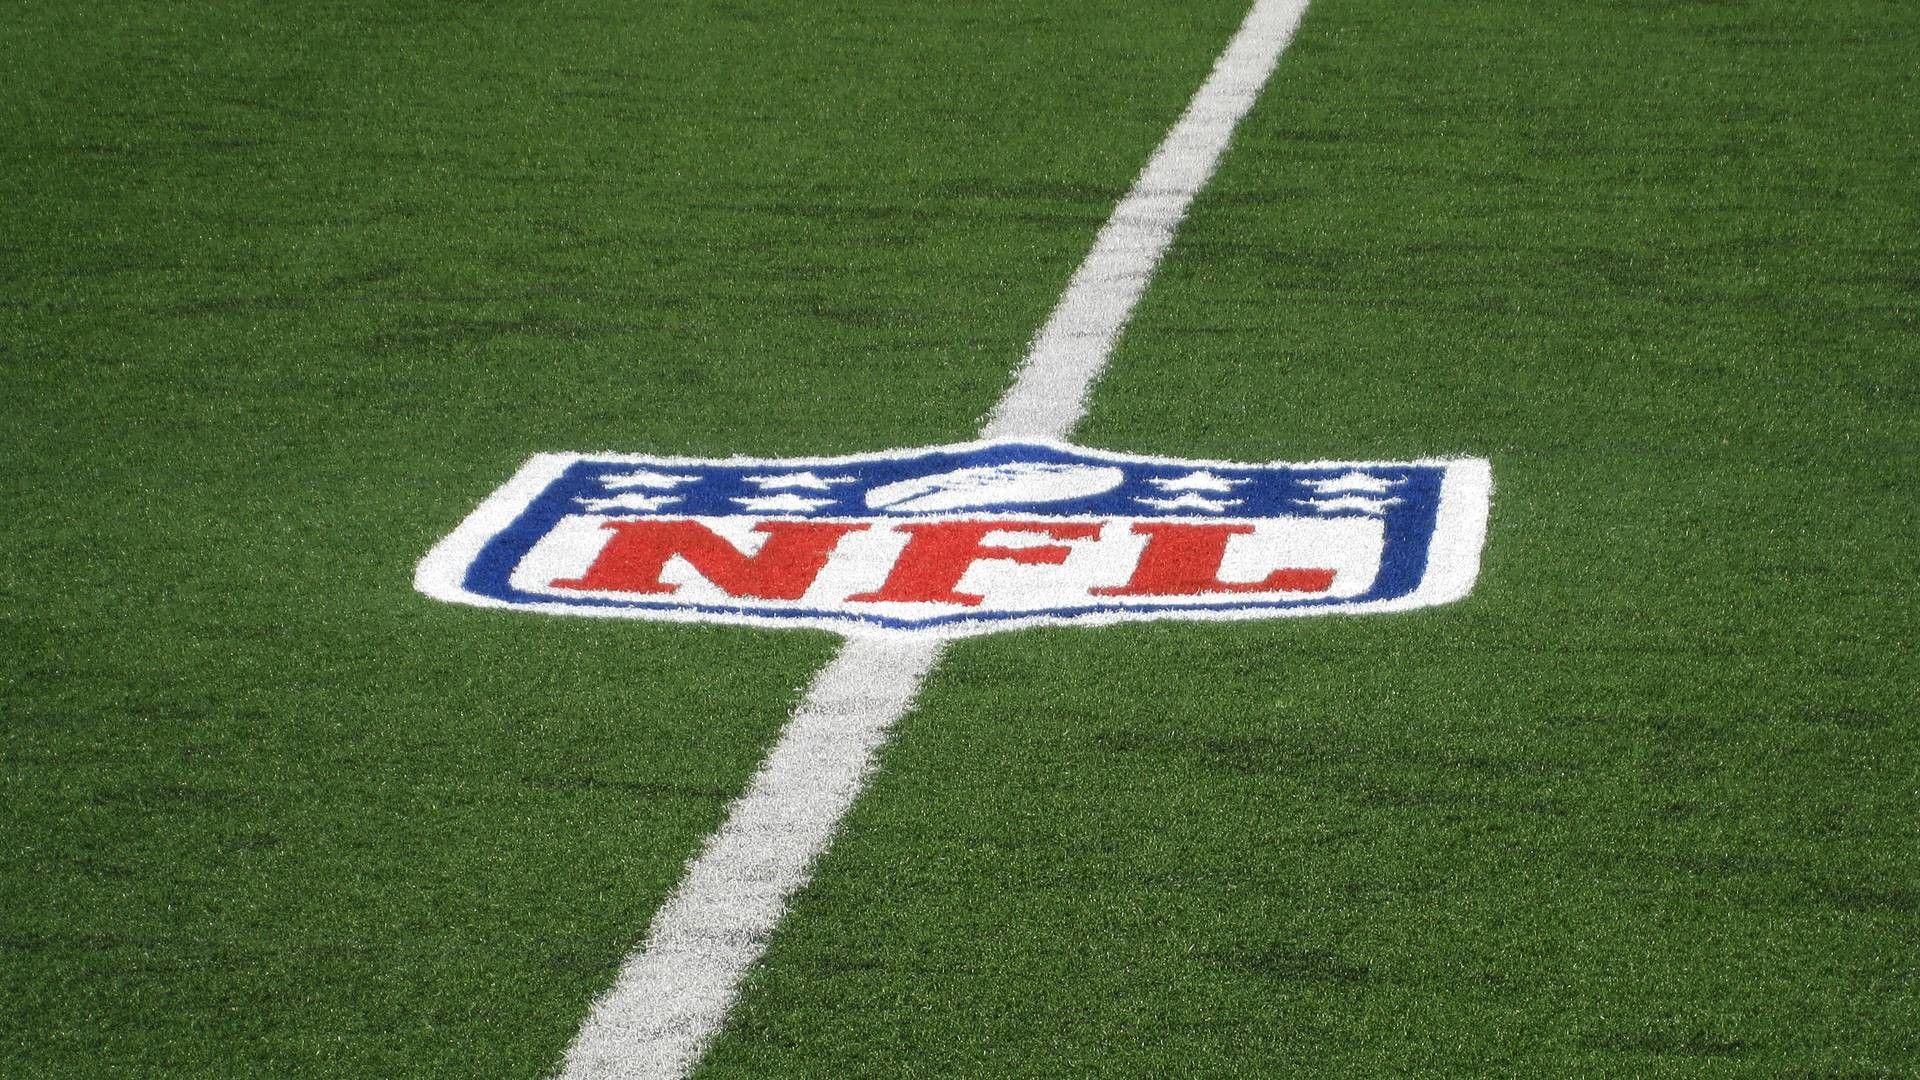 Nfl Football Field Background Hd Images 3 HD Wallpapers